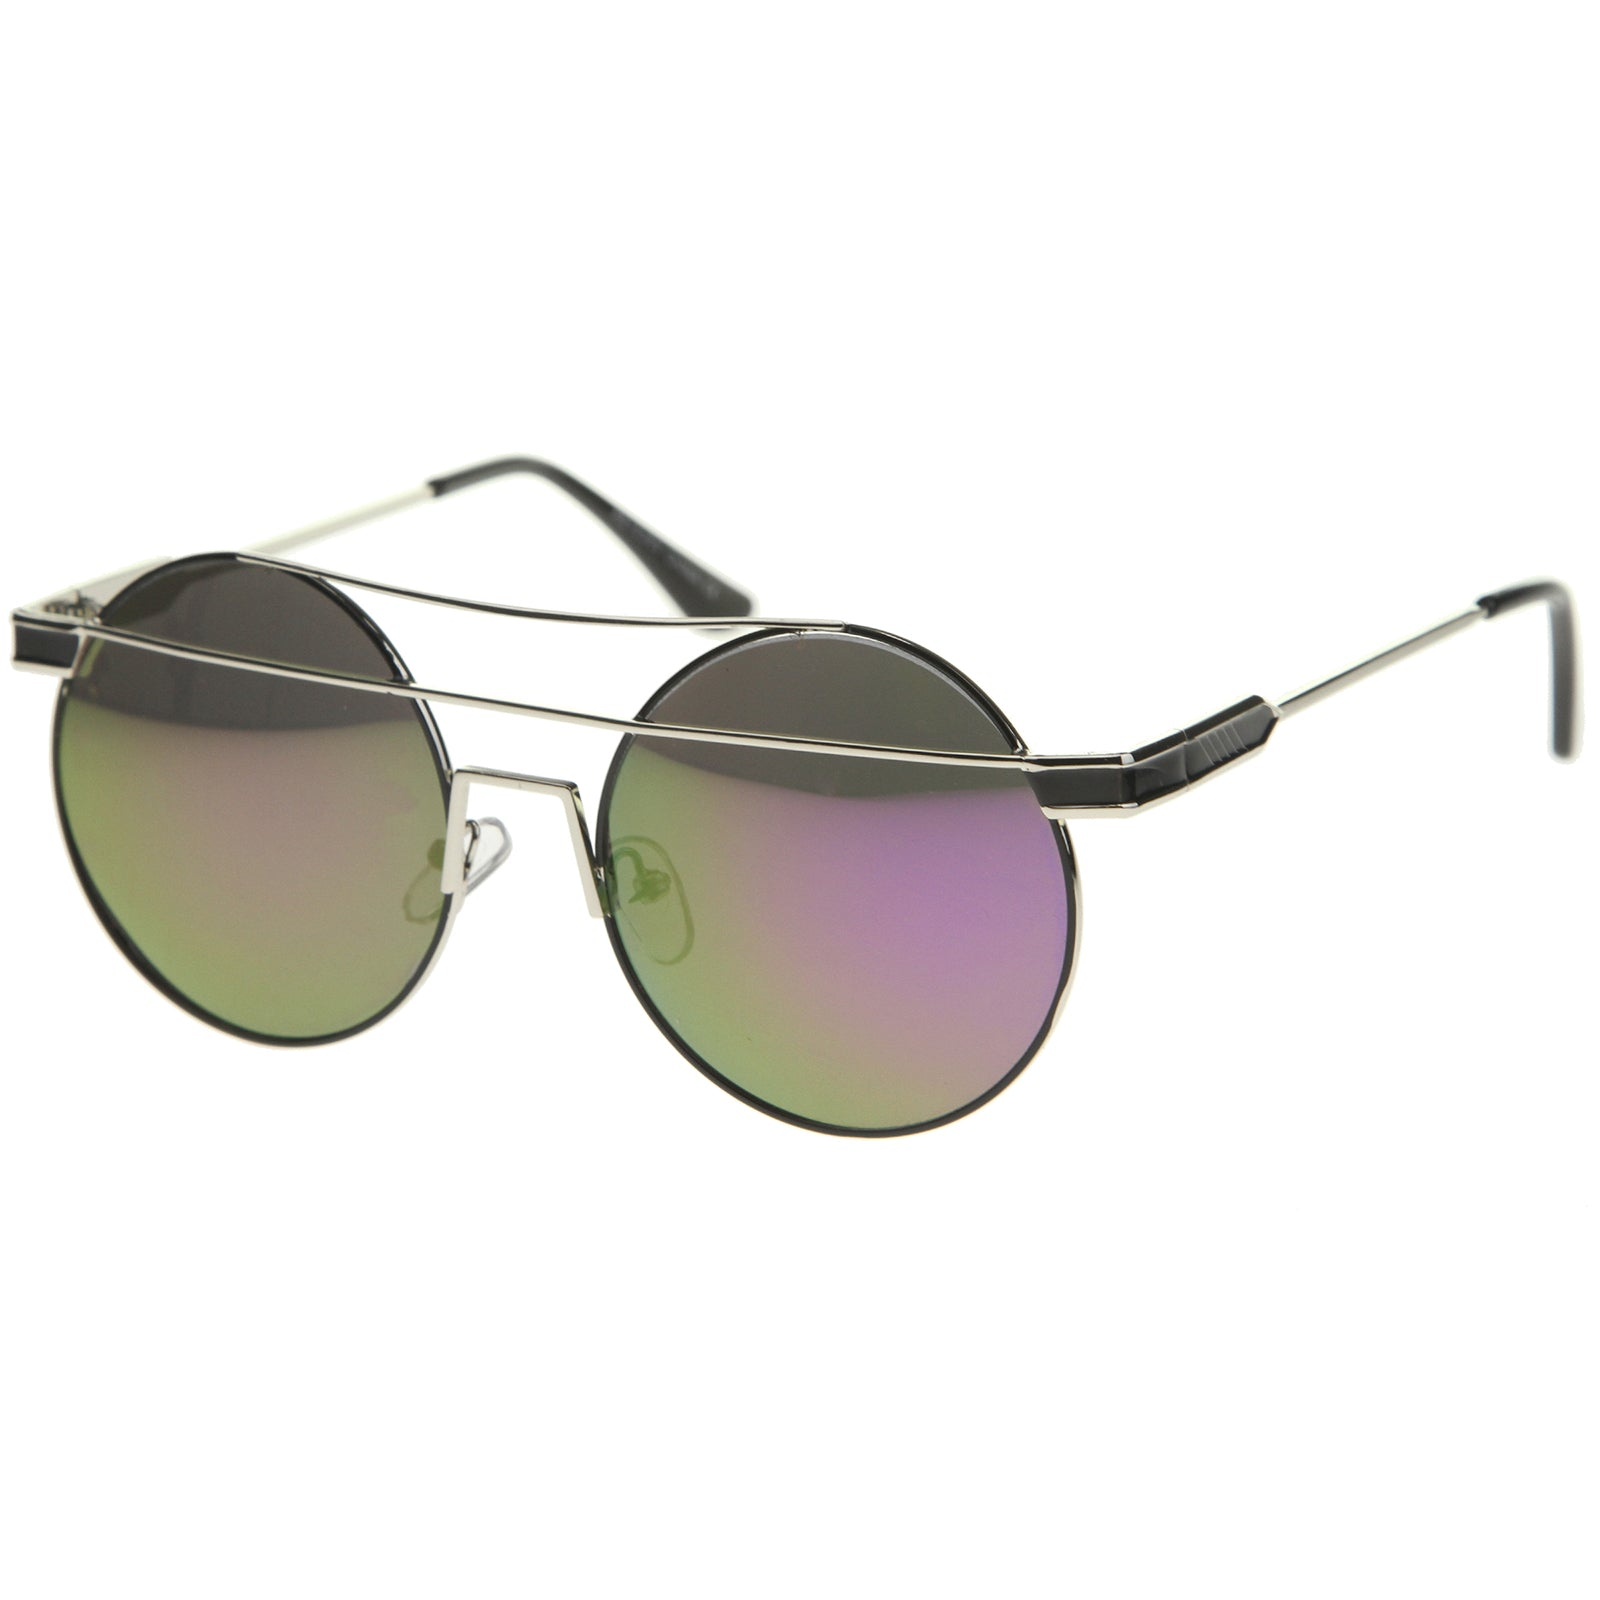 Modern Metal Frame Double Bridge Colored Mirror Lens Round Sunglasses 59mm - sunglass.la - 18